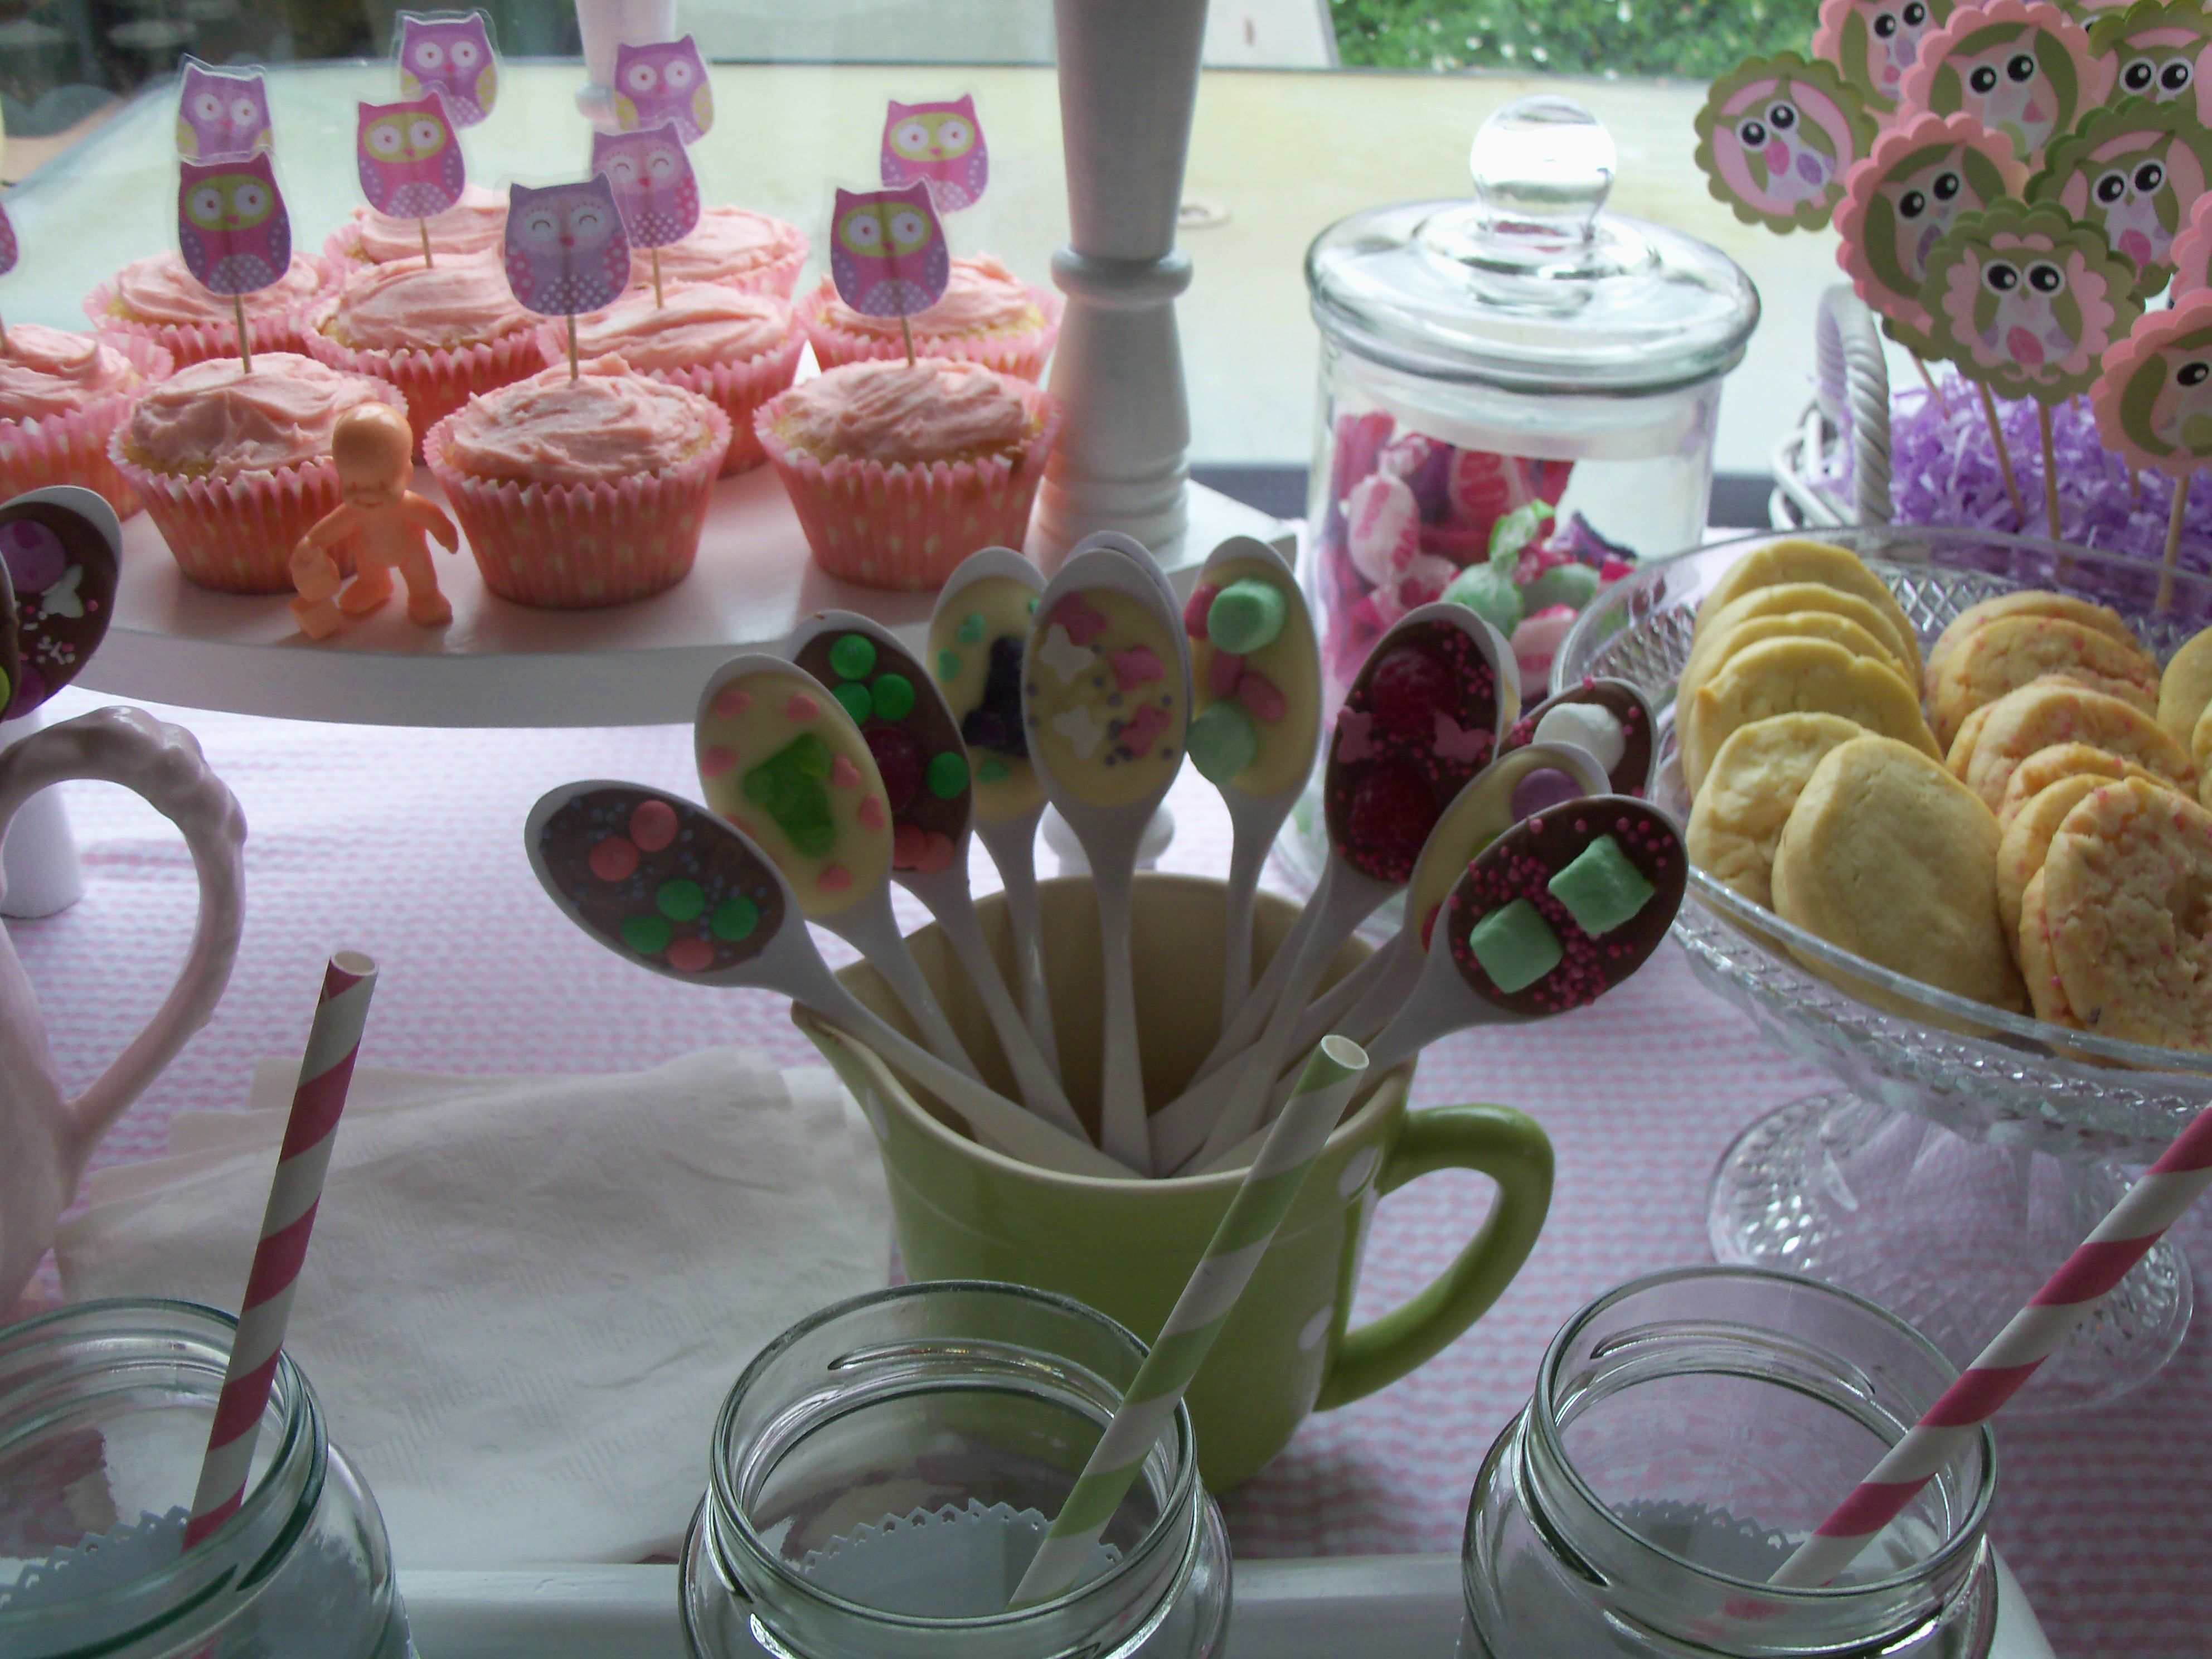 Yummy chocolate & lolly spoons, so easy & affective!!